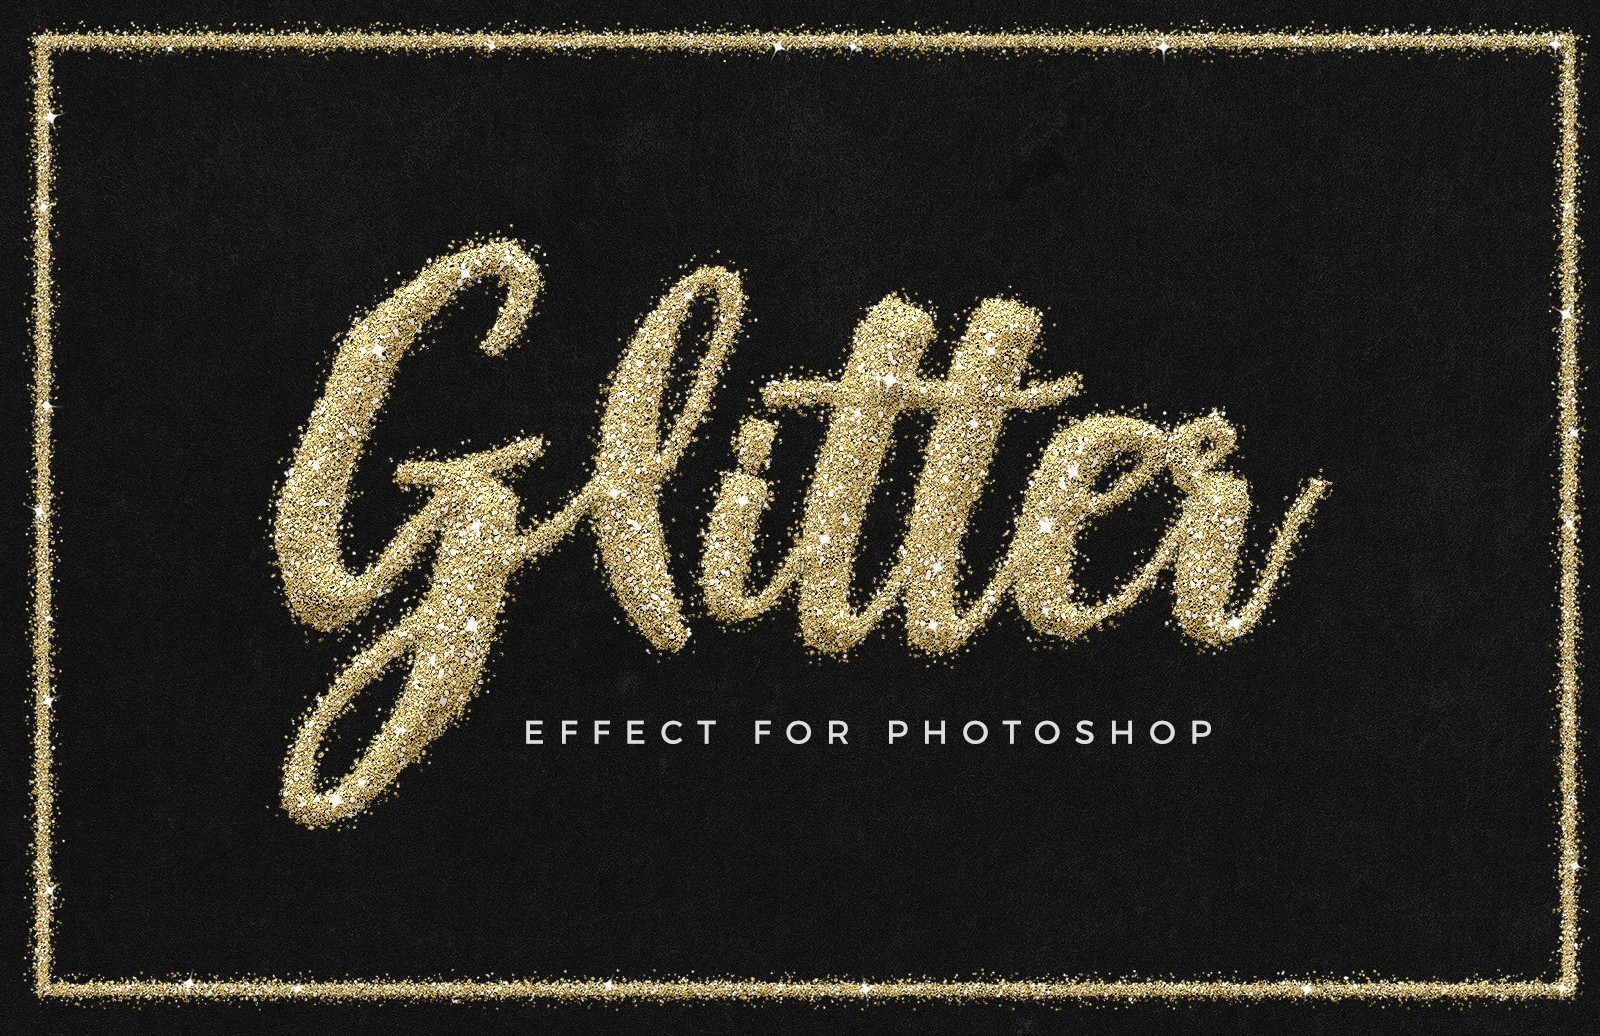 Glitter Text Effect for Photoshop